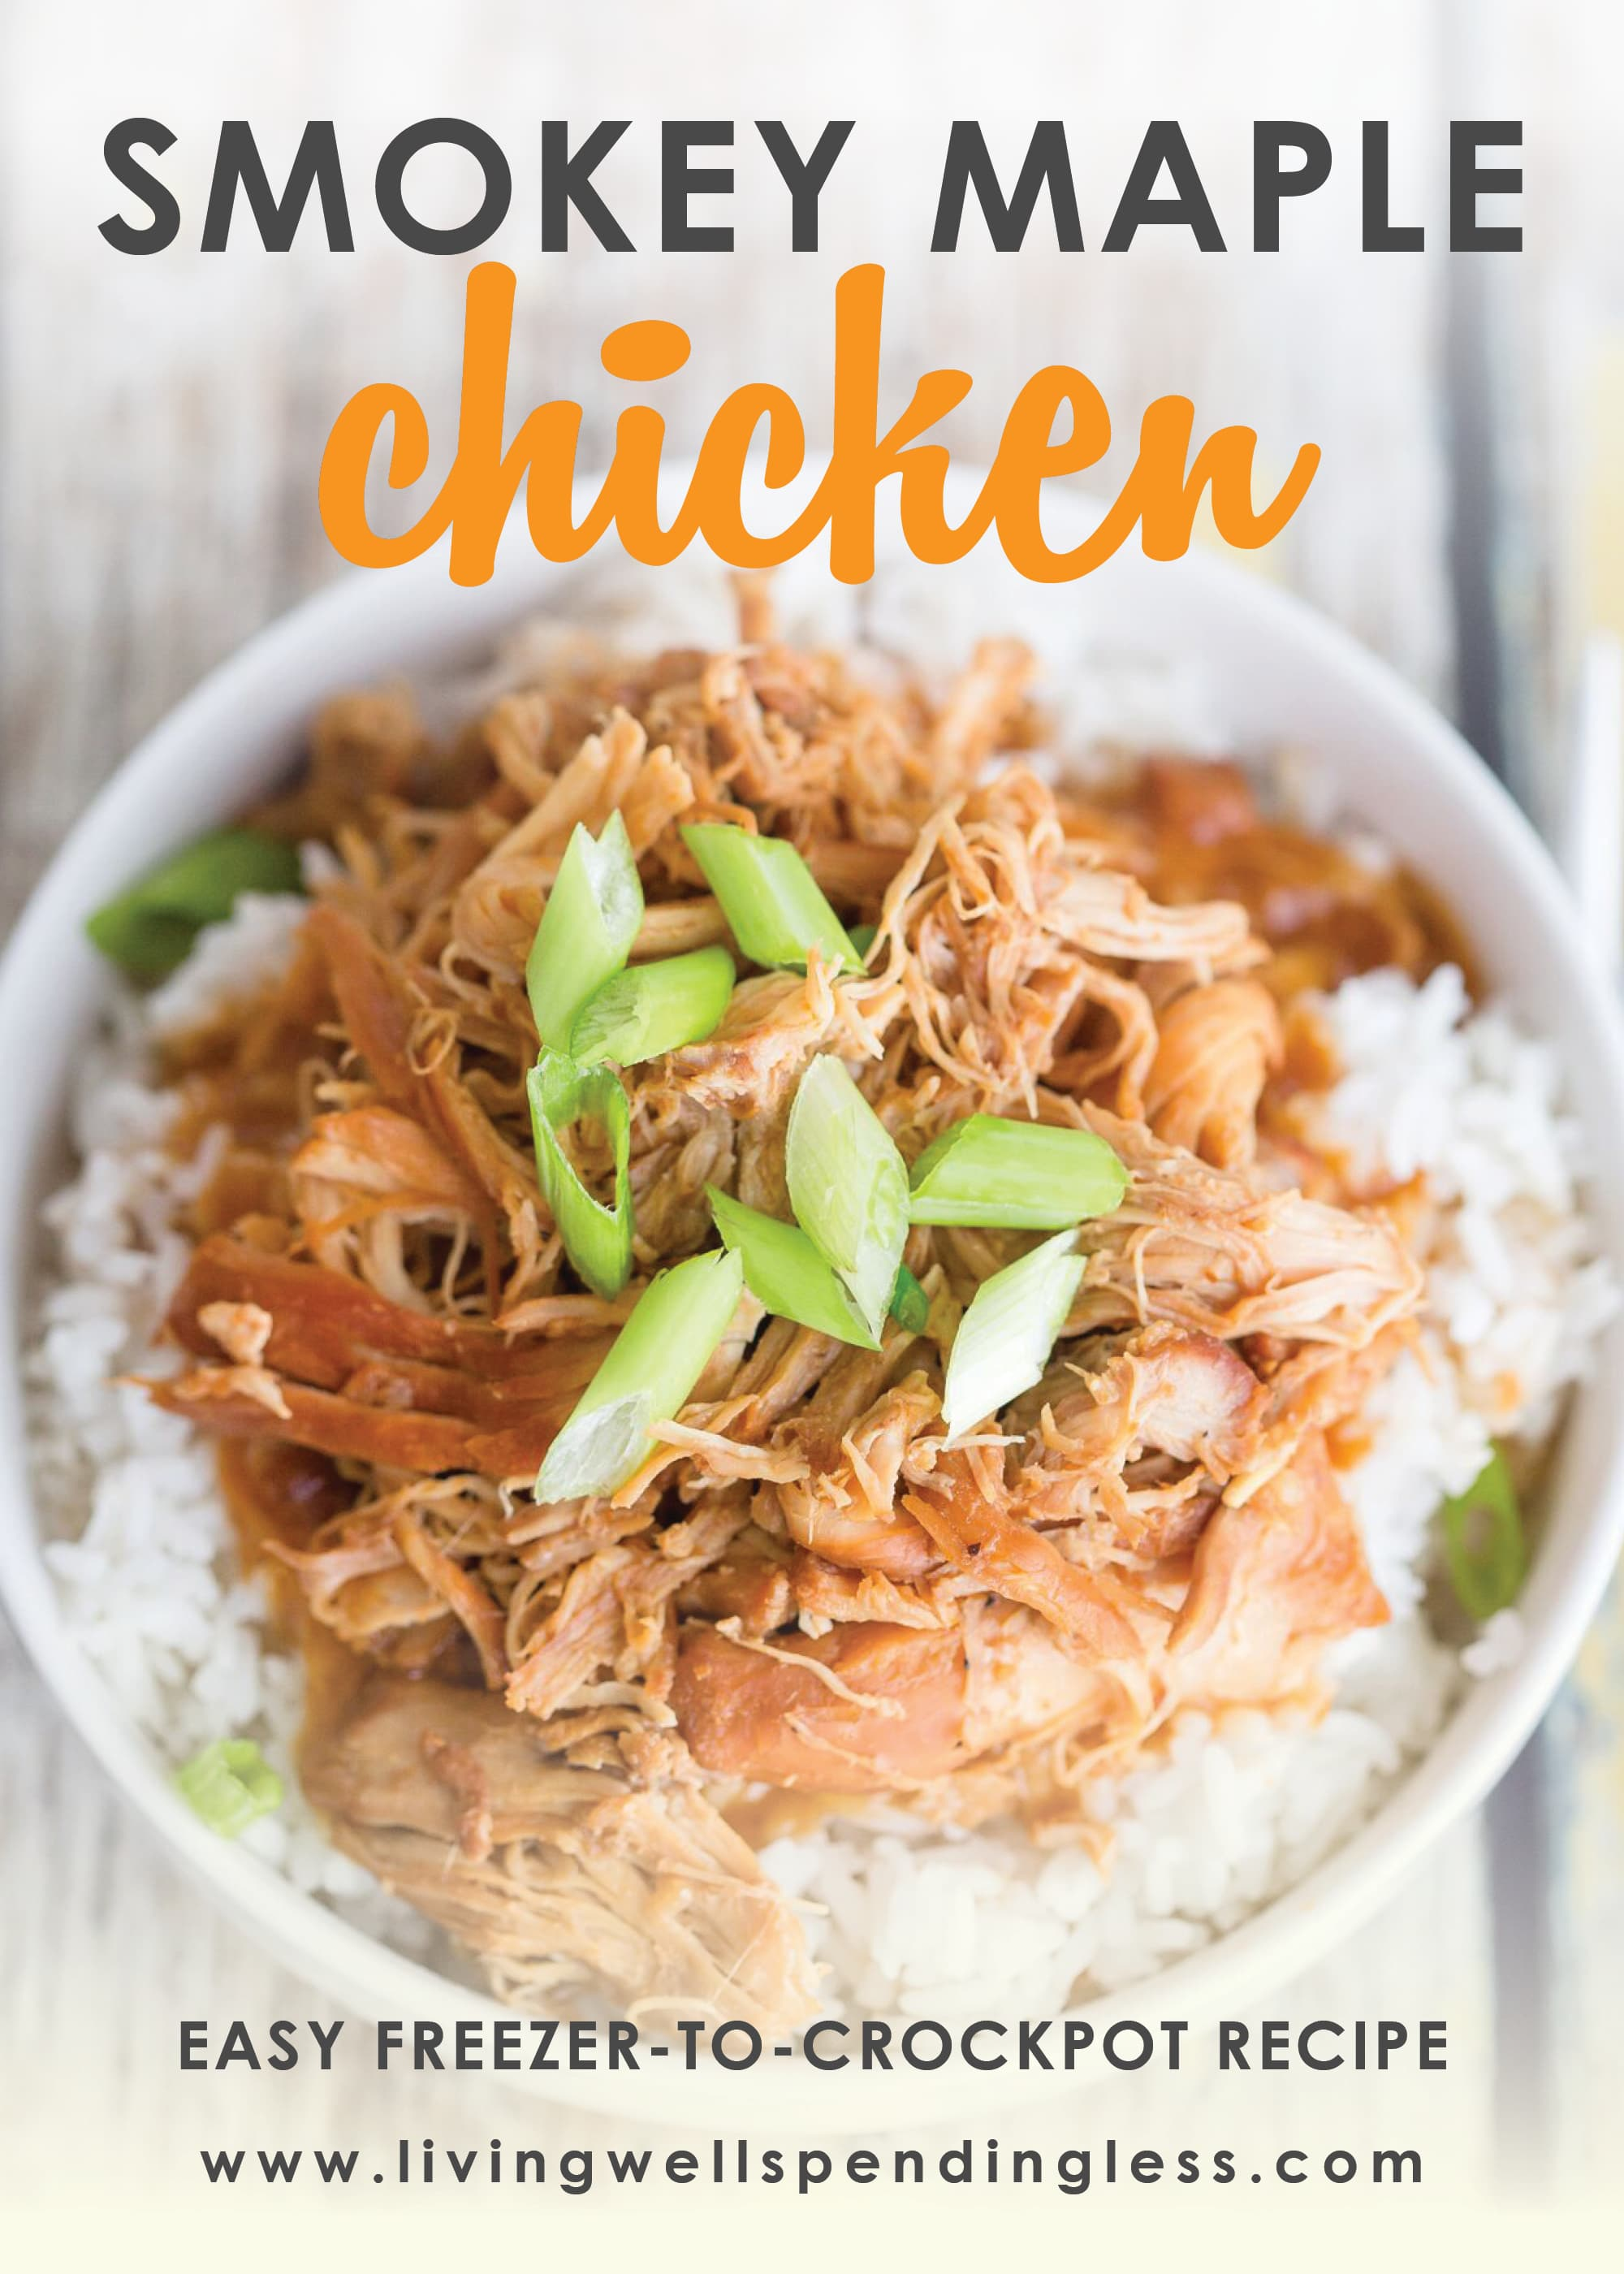 Smokey maple chicken freezer friendly recipe.